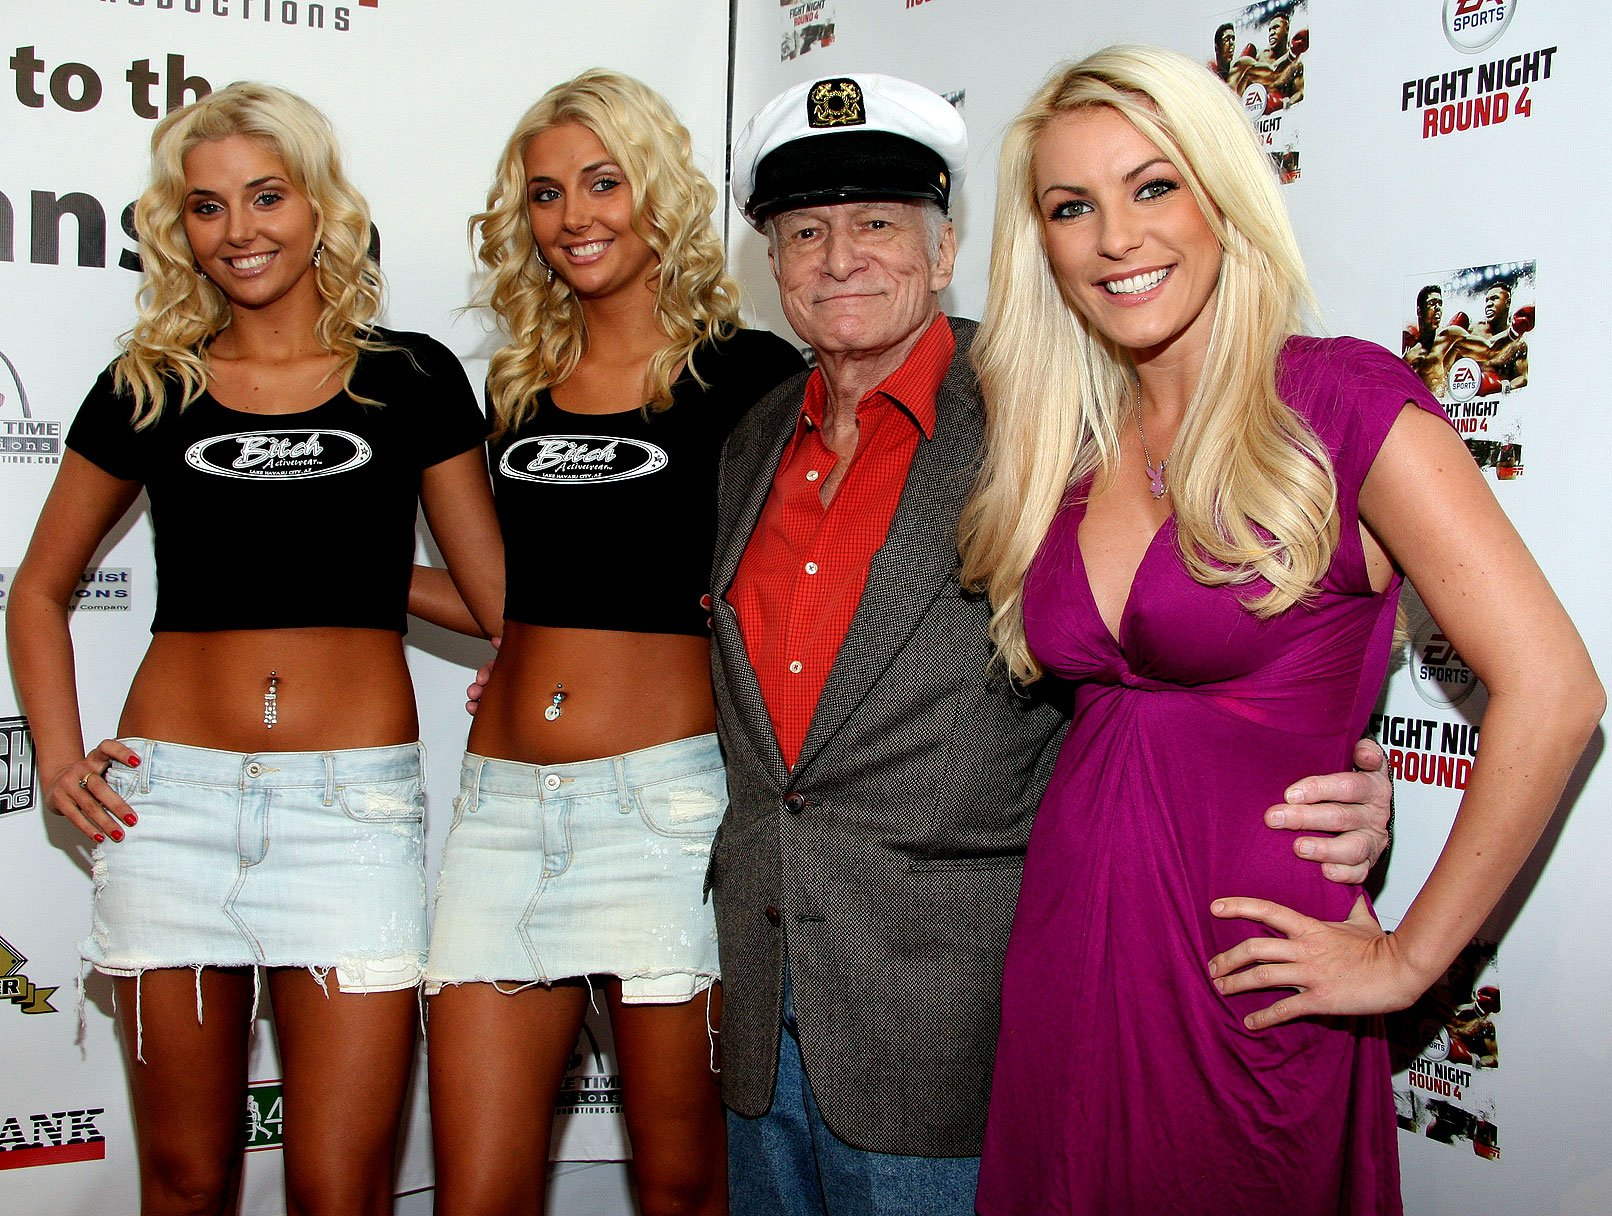 Hef and His Gals Get Punchy at the Mansion